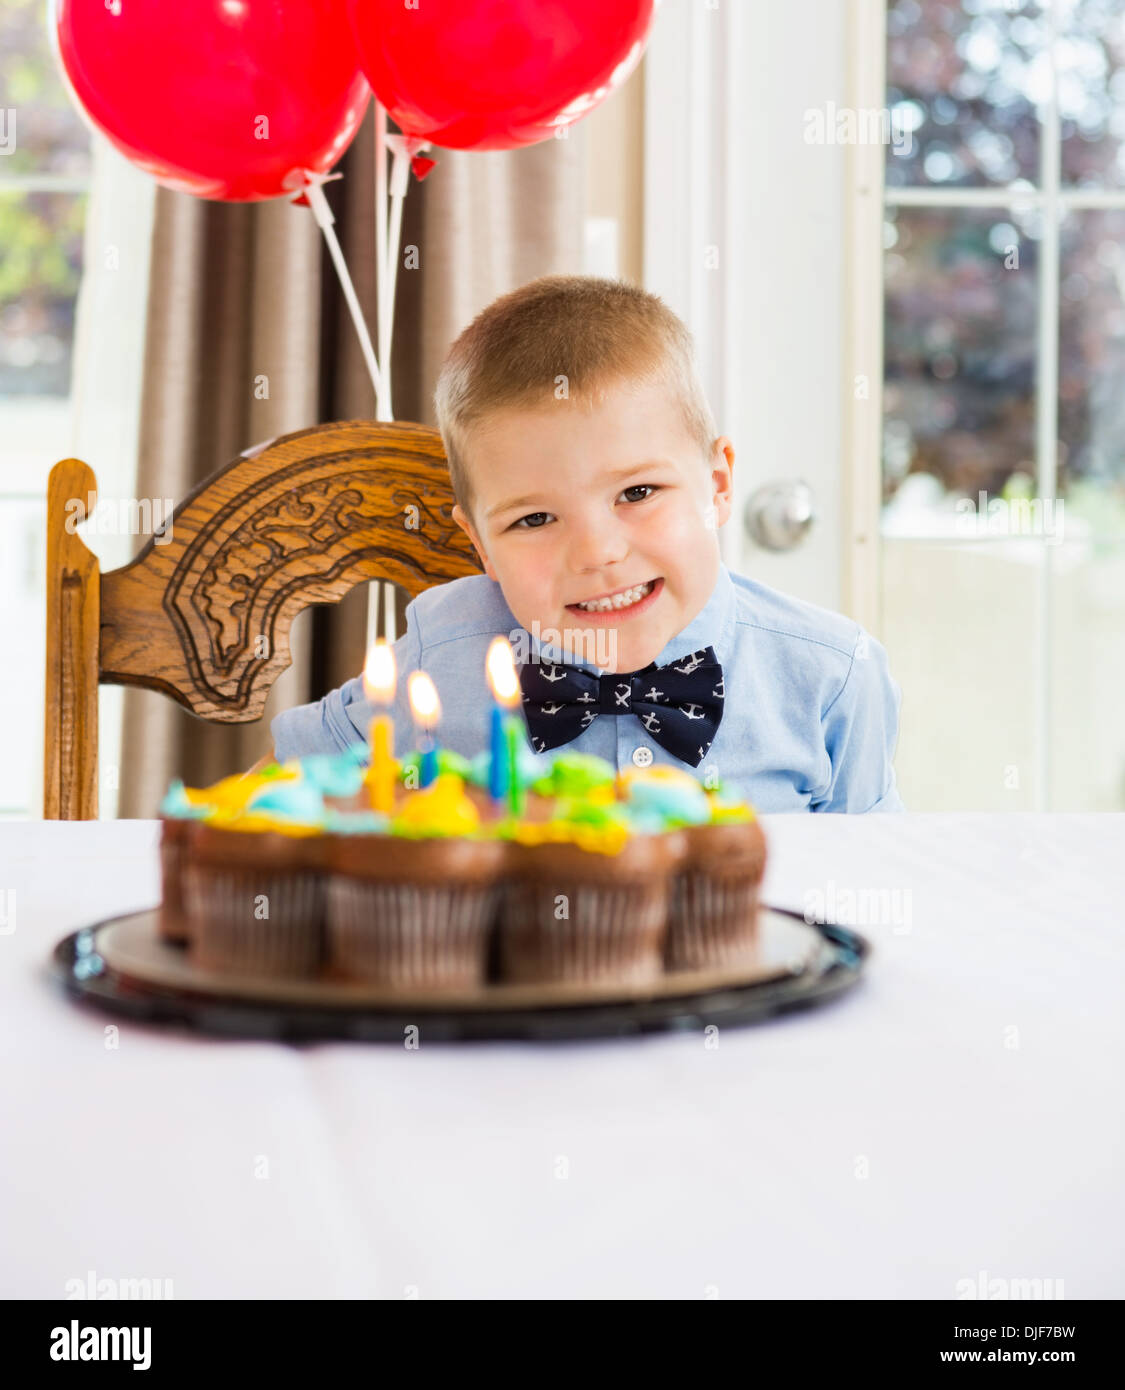 Happy Boy Sitting In Front Of Birthday Cake - Stock Image